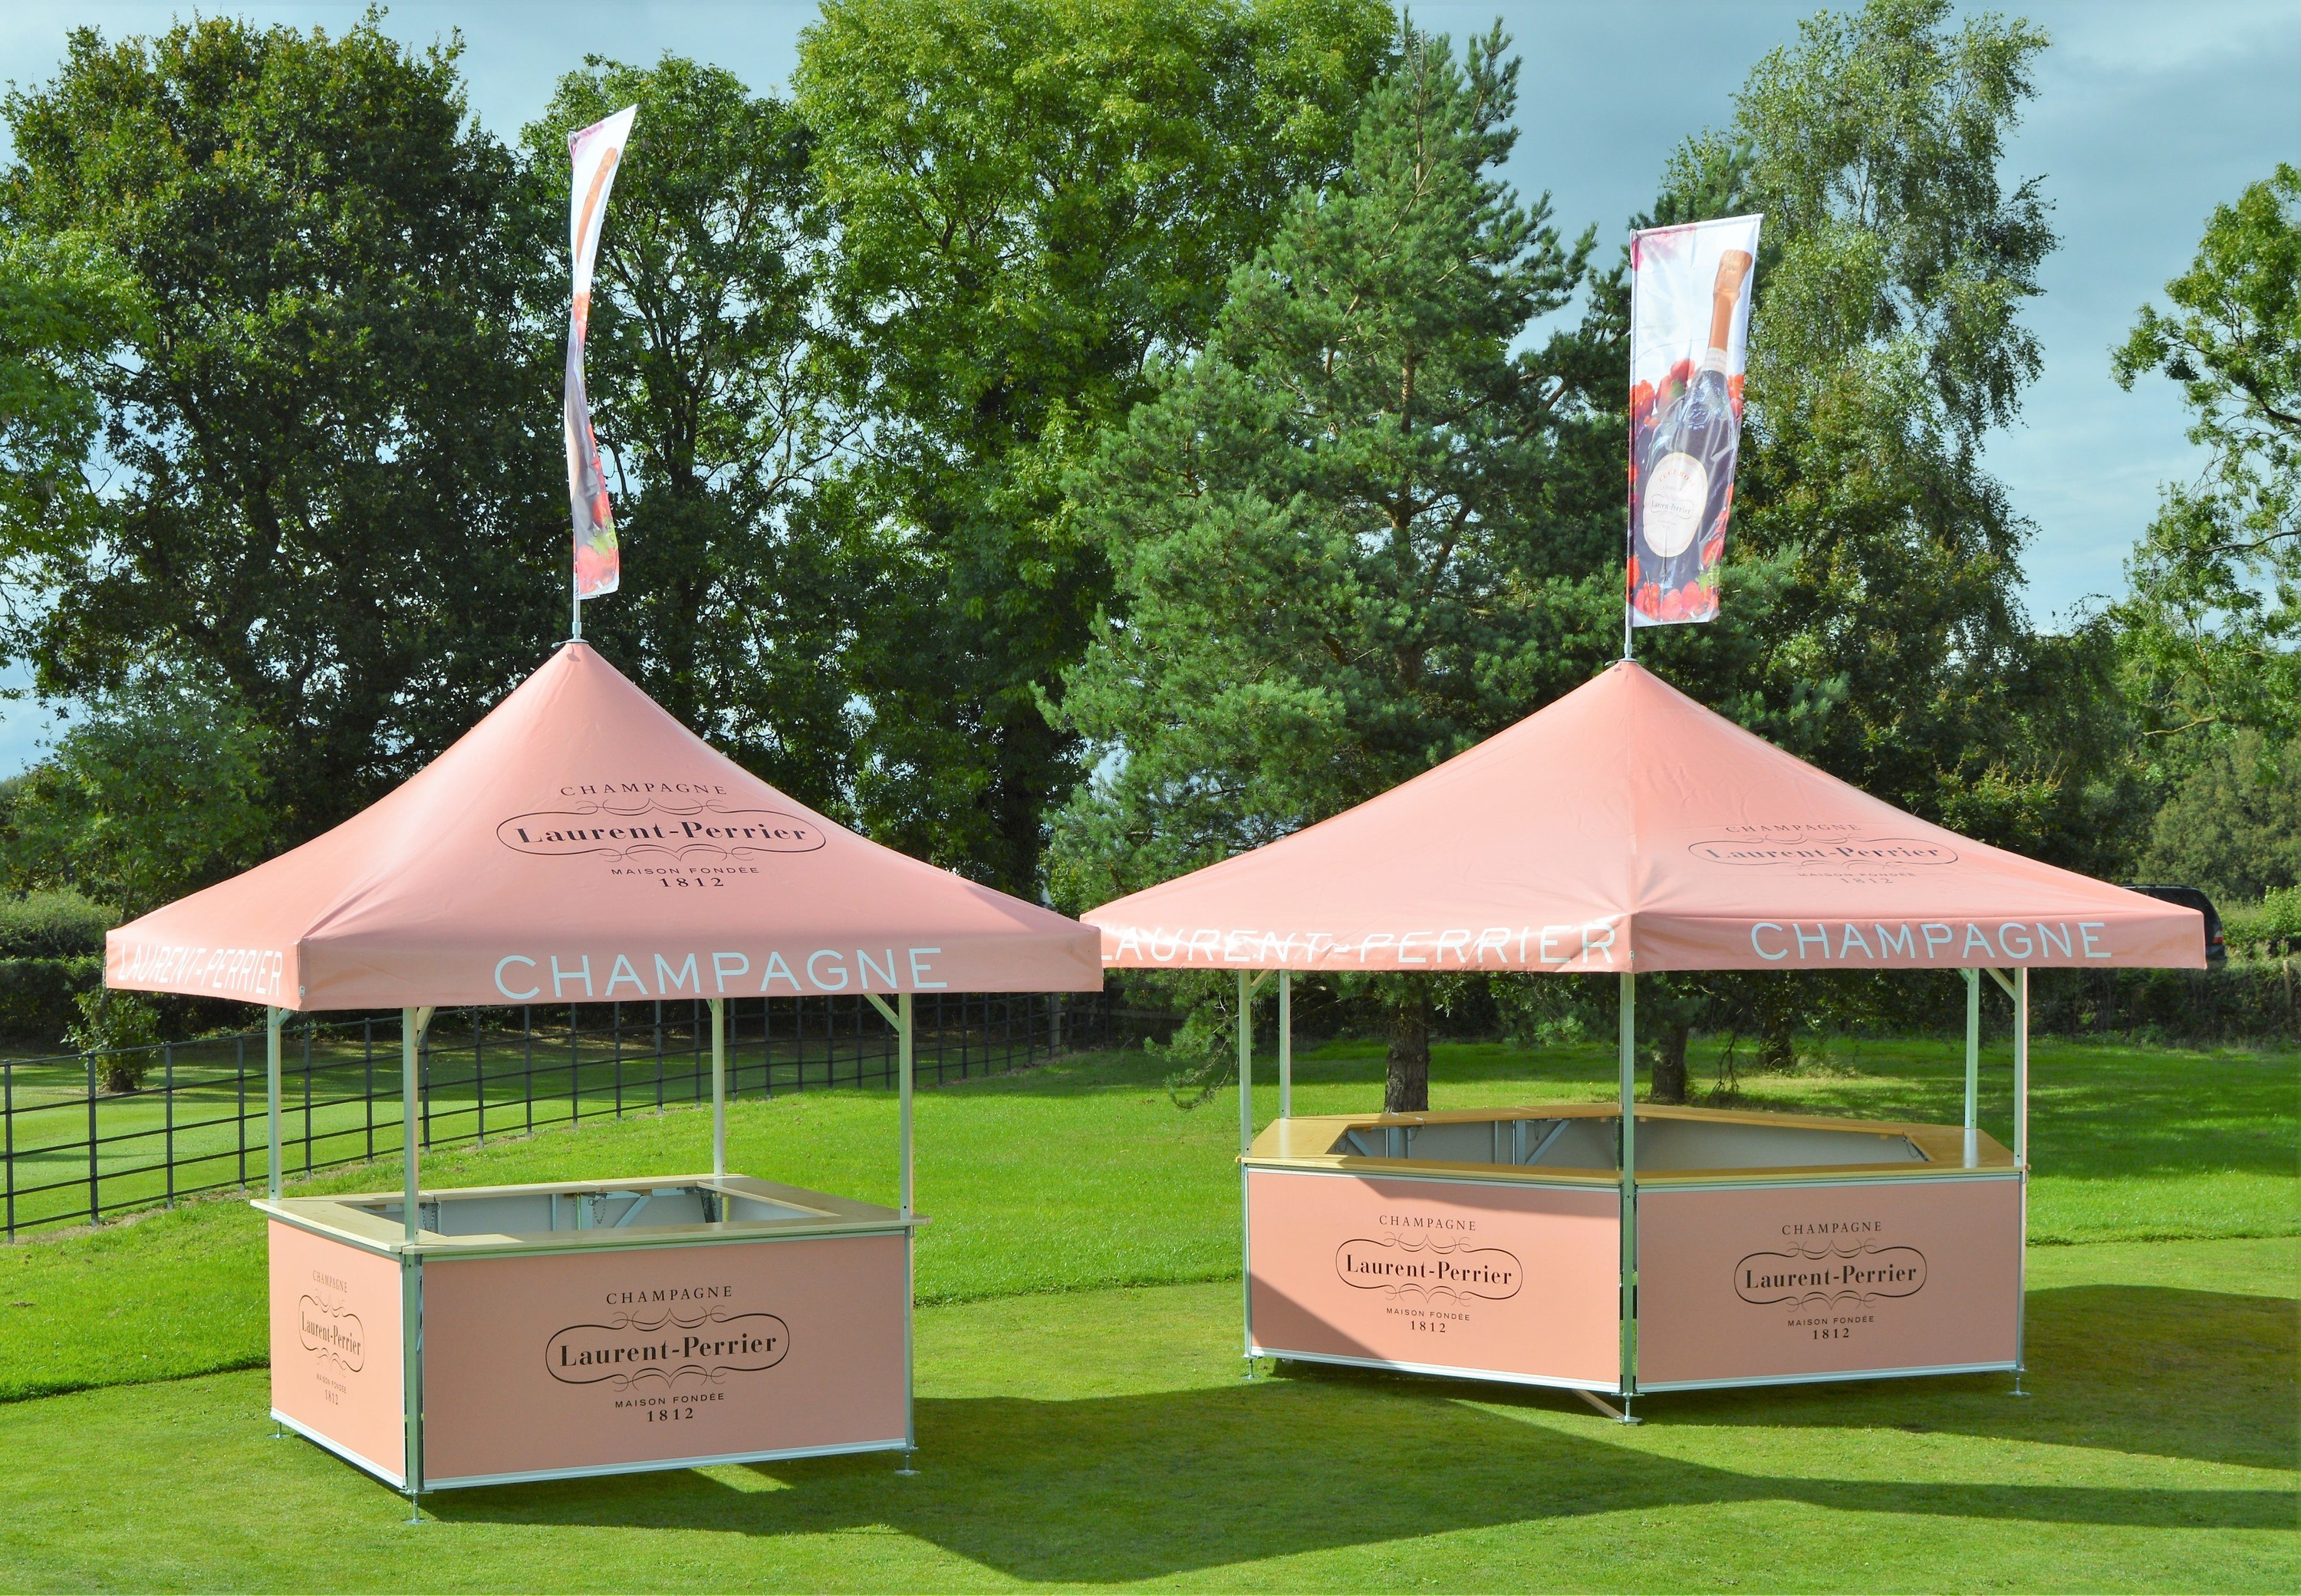 <p>Event, Mobile & Stadia Bars – Tents & Marquees – Hexagonal & Square Pavilions.</p> <p> </p> <p>Laurent Perrier Outdoor Promotional Stand Premium Champagne Event Bar ideally suited for Racecourse or other high-profile sporting events and venues eg cricket ground.</p> <p> </p> <p>Branding opportunities of the roof and base panels are available.  Both include Roof Flags</p>